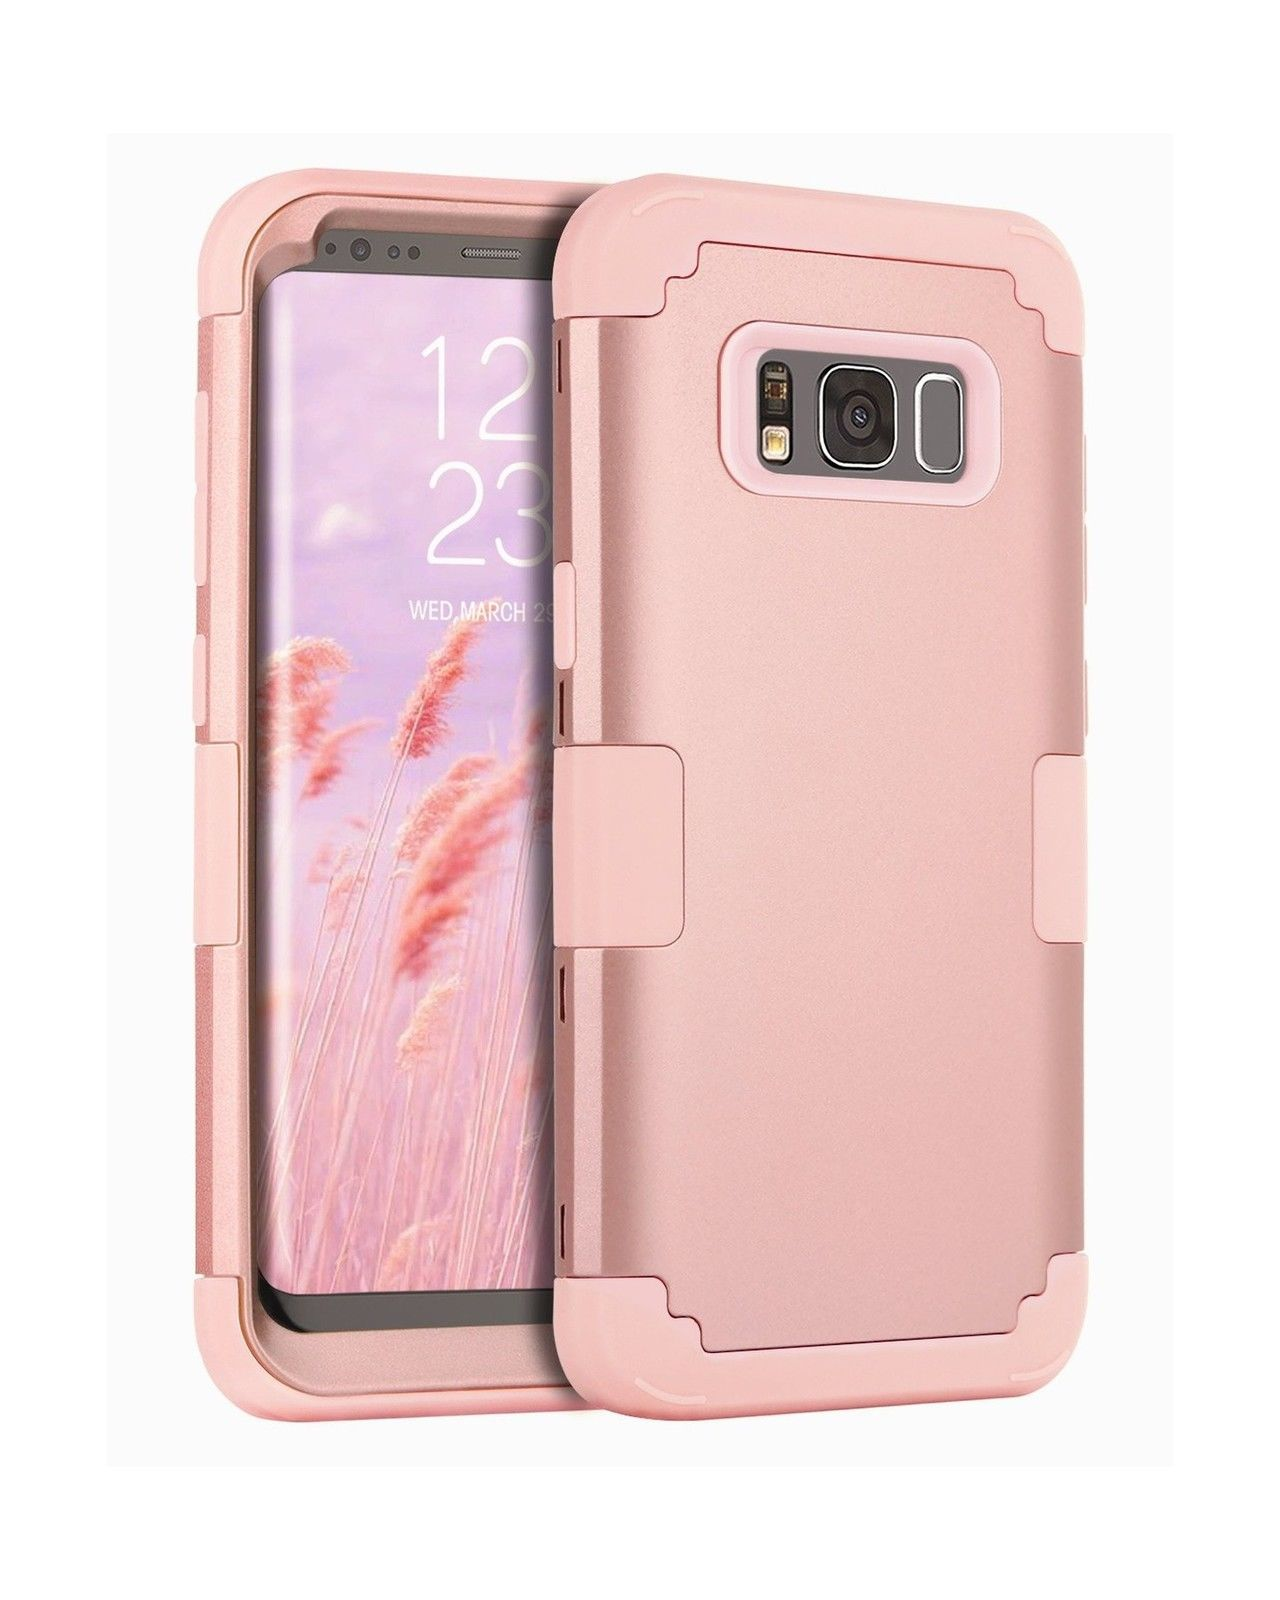 big sale b3815 08e4e Details about RUGGED ROSE GOLD New Cute Shockproof Hybrid Phone Case ...